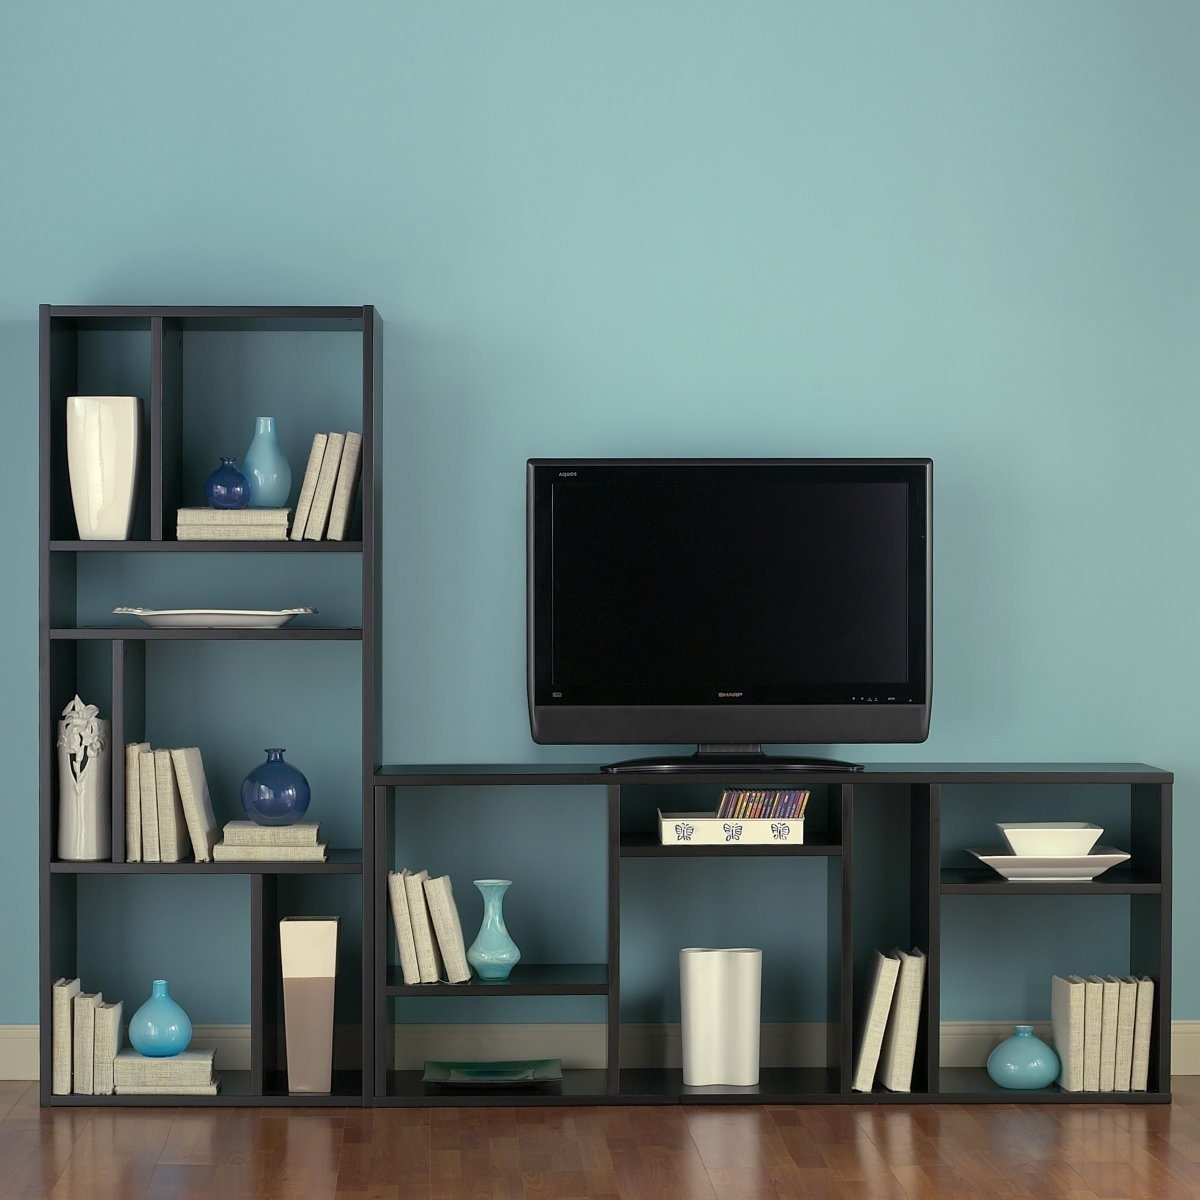 Tv Stands Inspire Black And White Tv Stand Bookshelf Design Ideas For Bookshelf Tv Unit (#14 of 15)